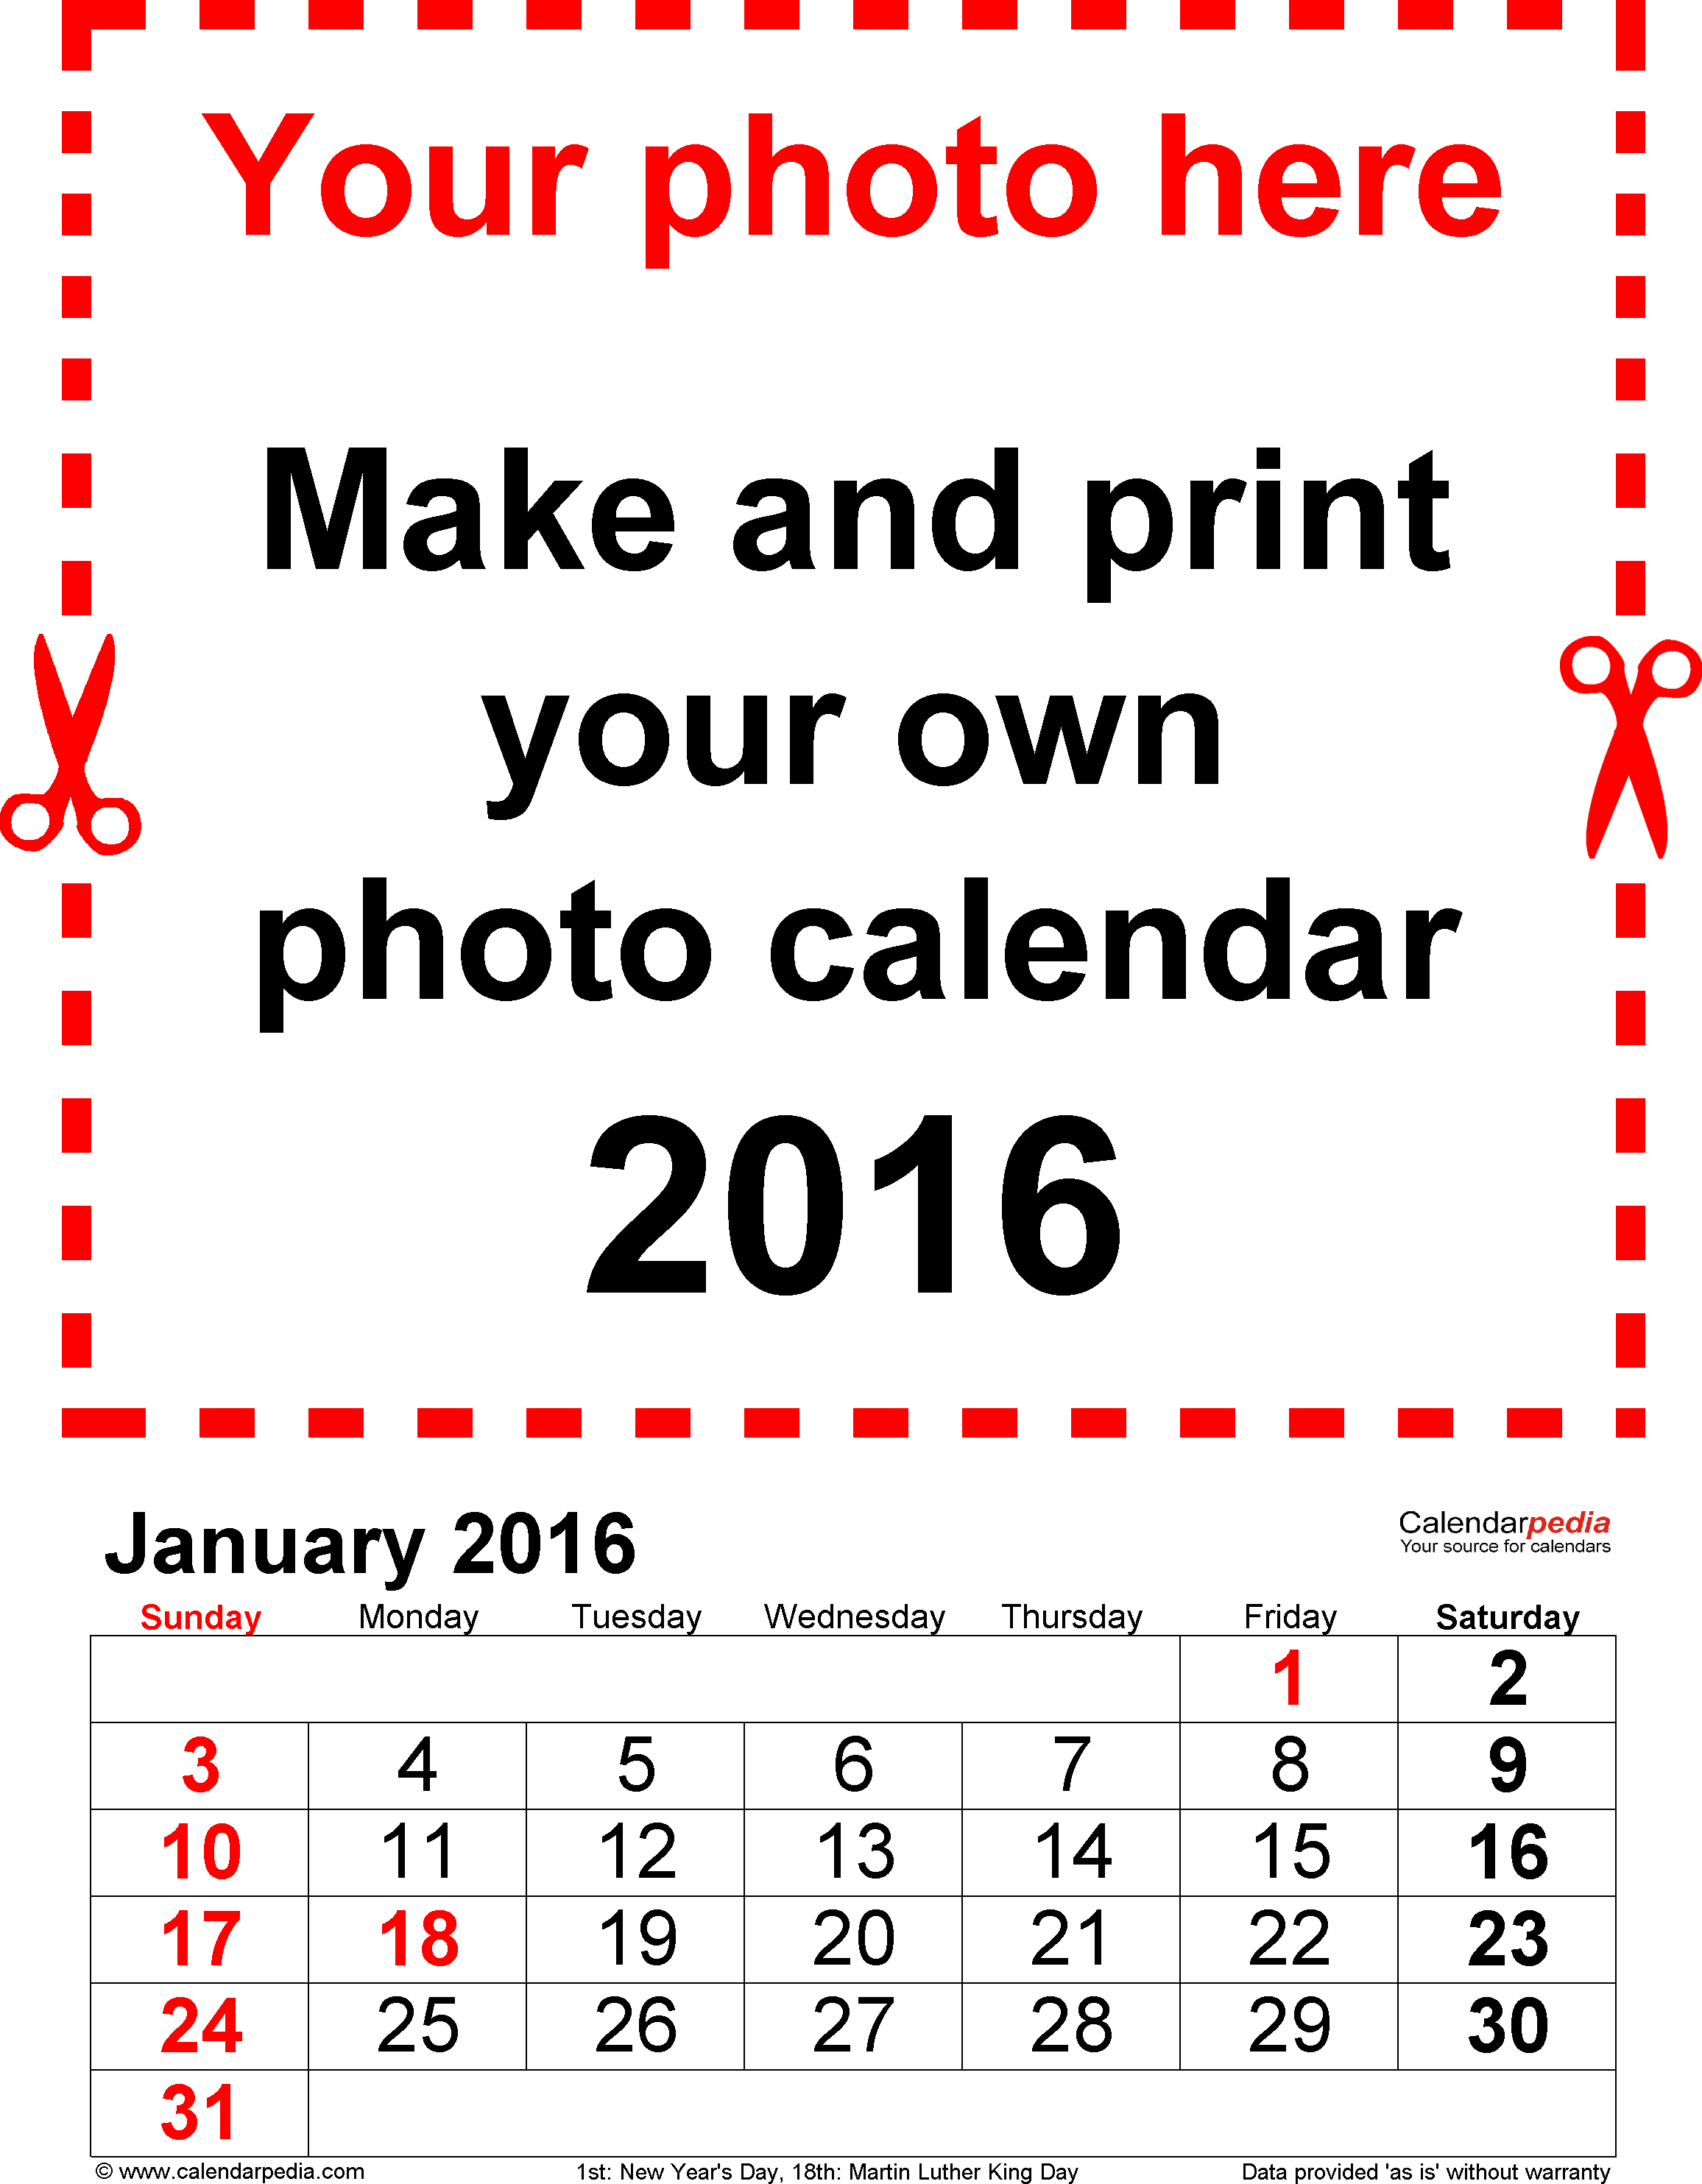 Template 2: Photo calendar 2016 for Excel, 12 pages, portrait format, large numerals for easy reading